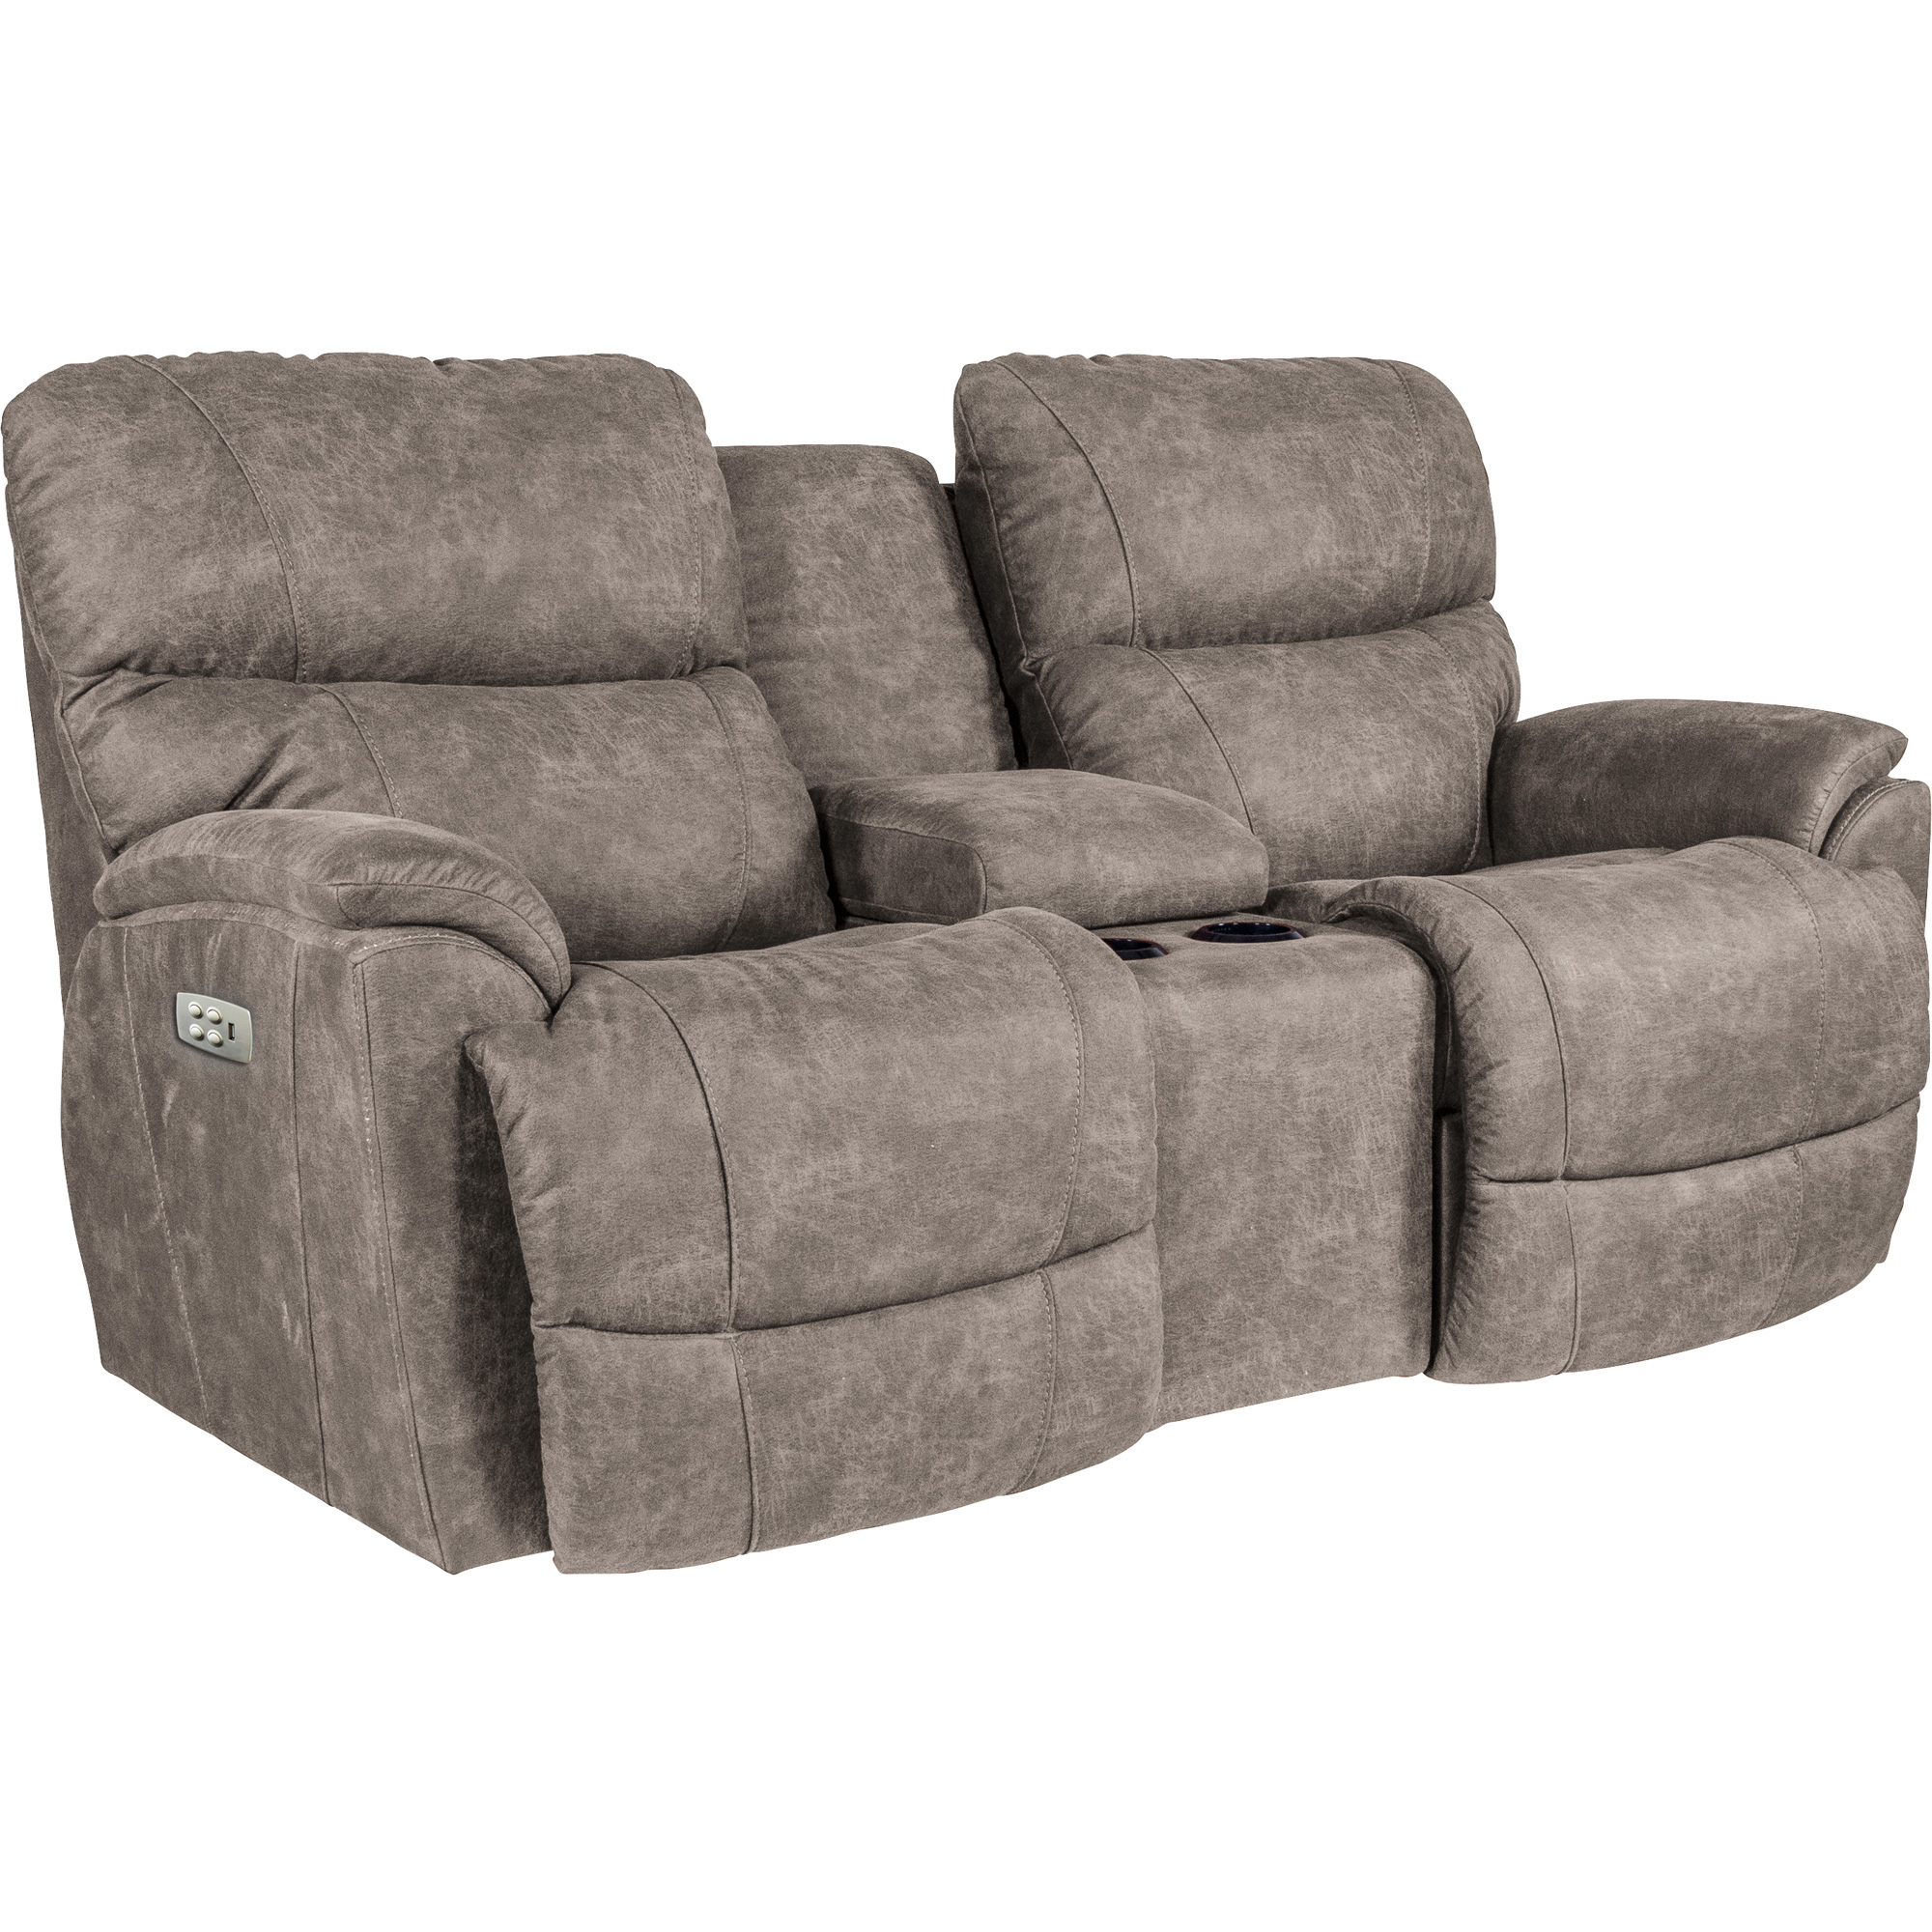 La-Z-Boy | Trouper Sable Power Plus Reclining Console Loveseat Sofa